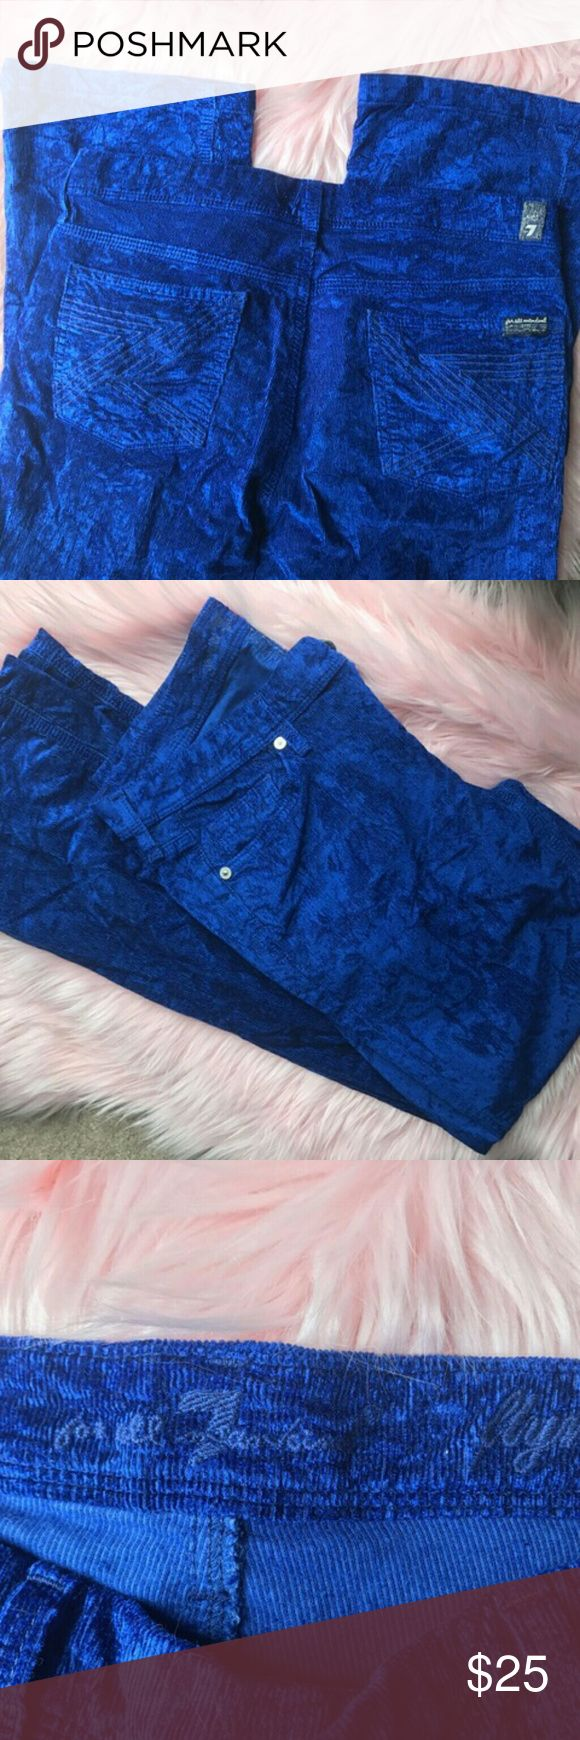 7 for All Mankind Electric Blue Flynt cords size 2 Not your typical cords, these electric blue pants add pizzazz to your outfit. 7 For All Mankind Pants Straight Leg